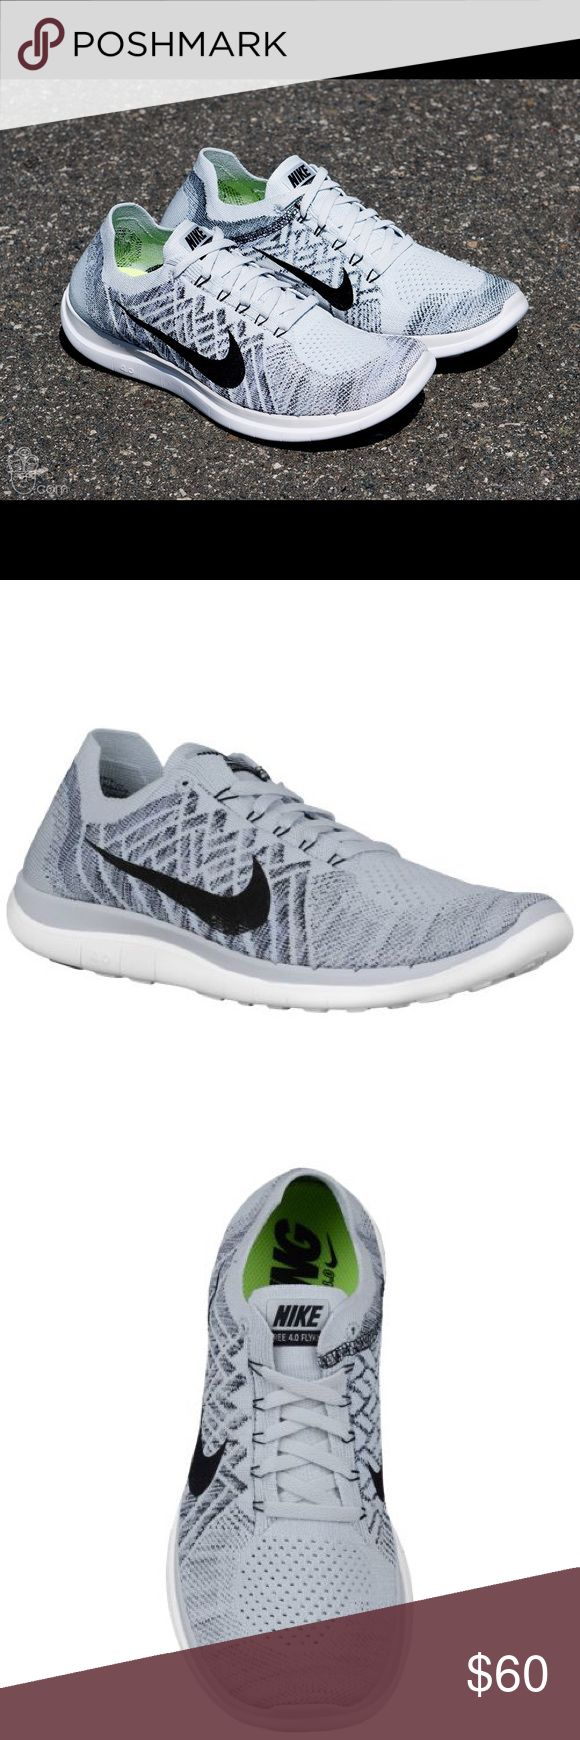 Nike Free 4.0 Flyknit The Nike Free 4.0 Flykit, snug fit and flexible. One-piece Flyknit snug, sock-like fit that moves with your foot while offering both support and breathability. Nike Shoes Athletic Shoes